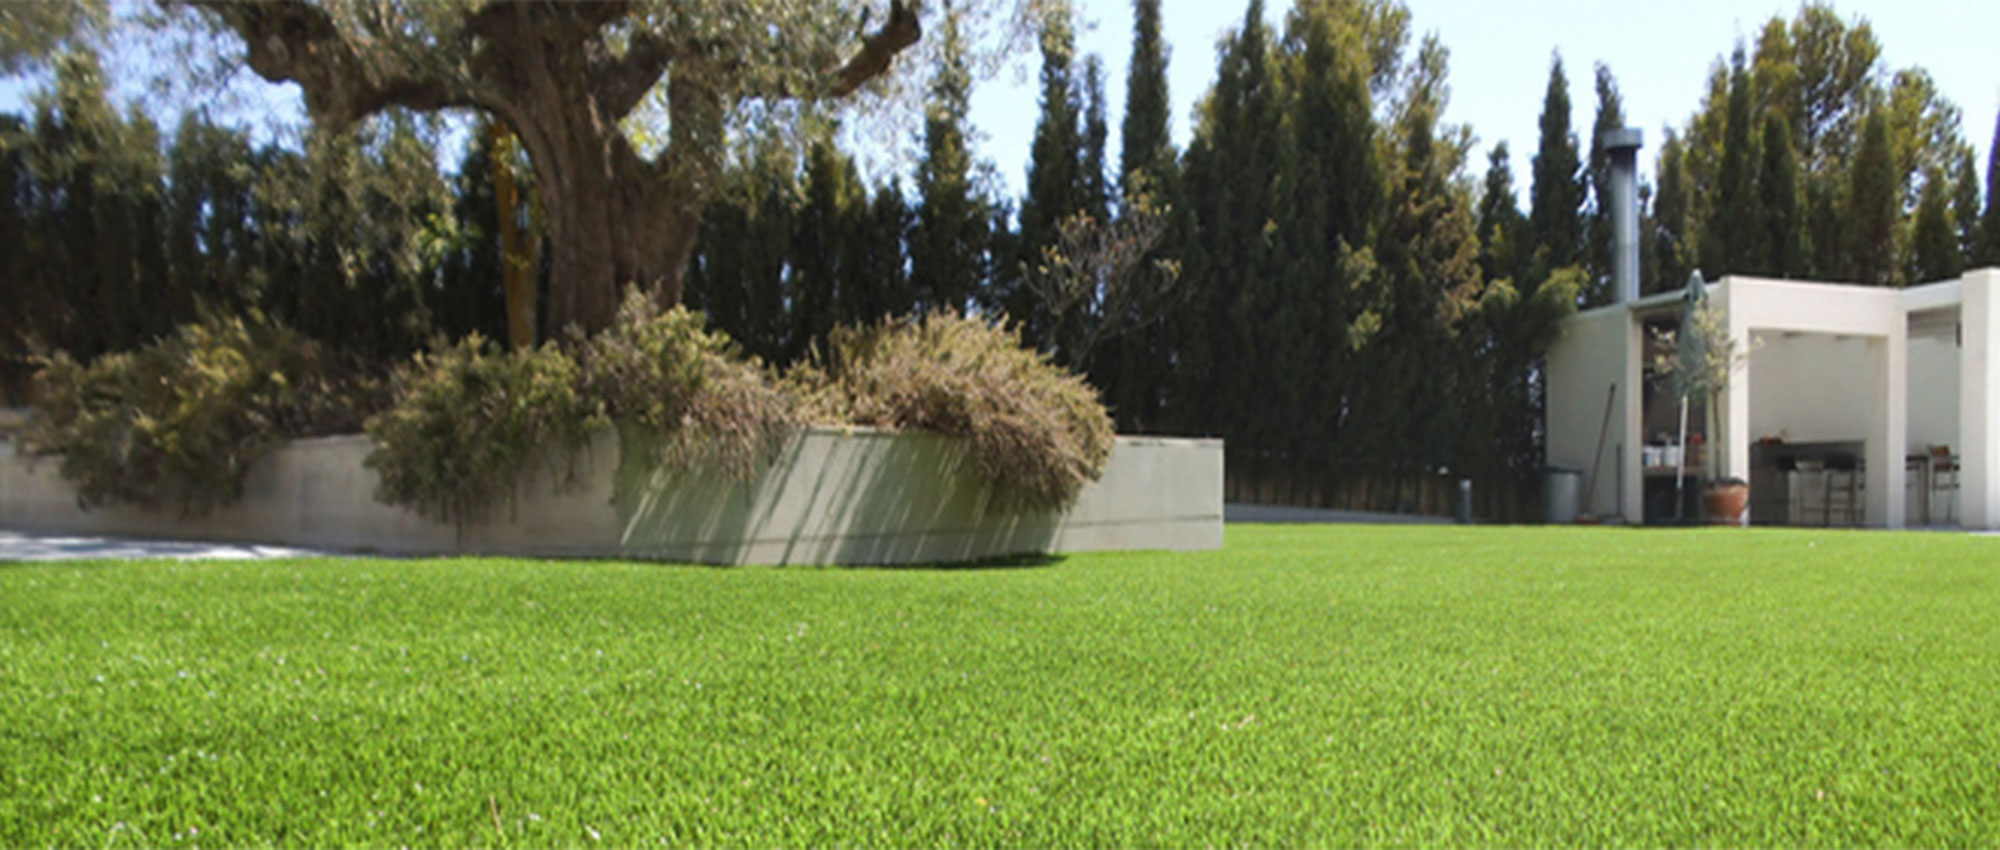 Artificial grass Lime. Advantages and benefits